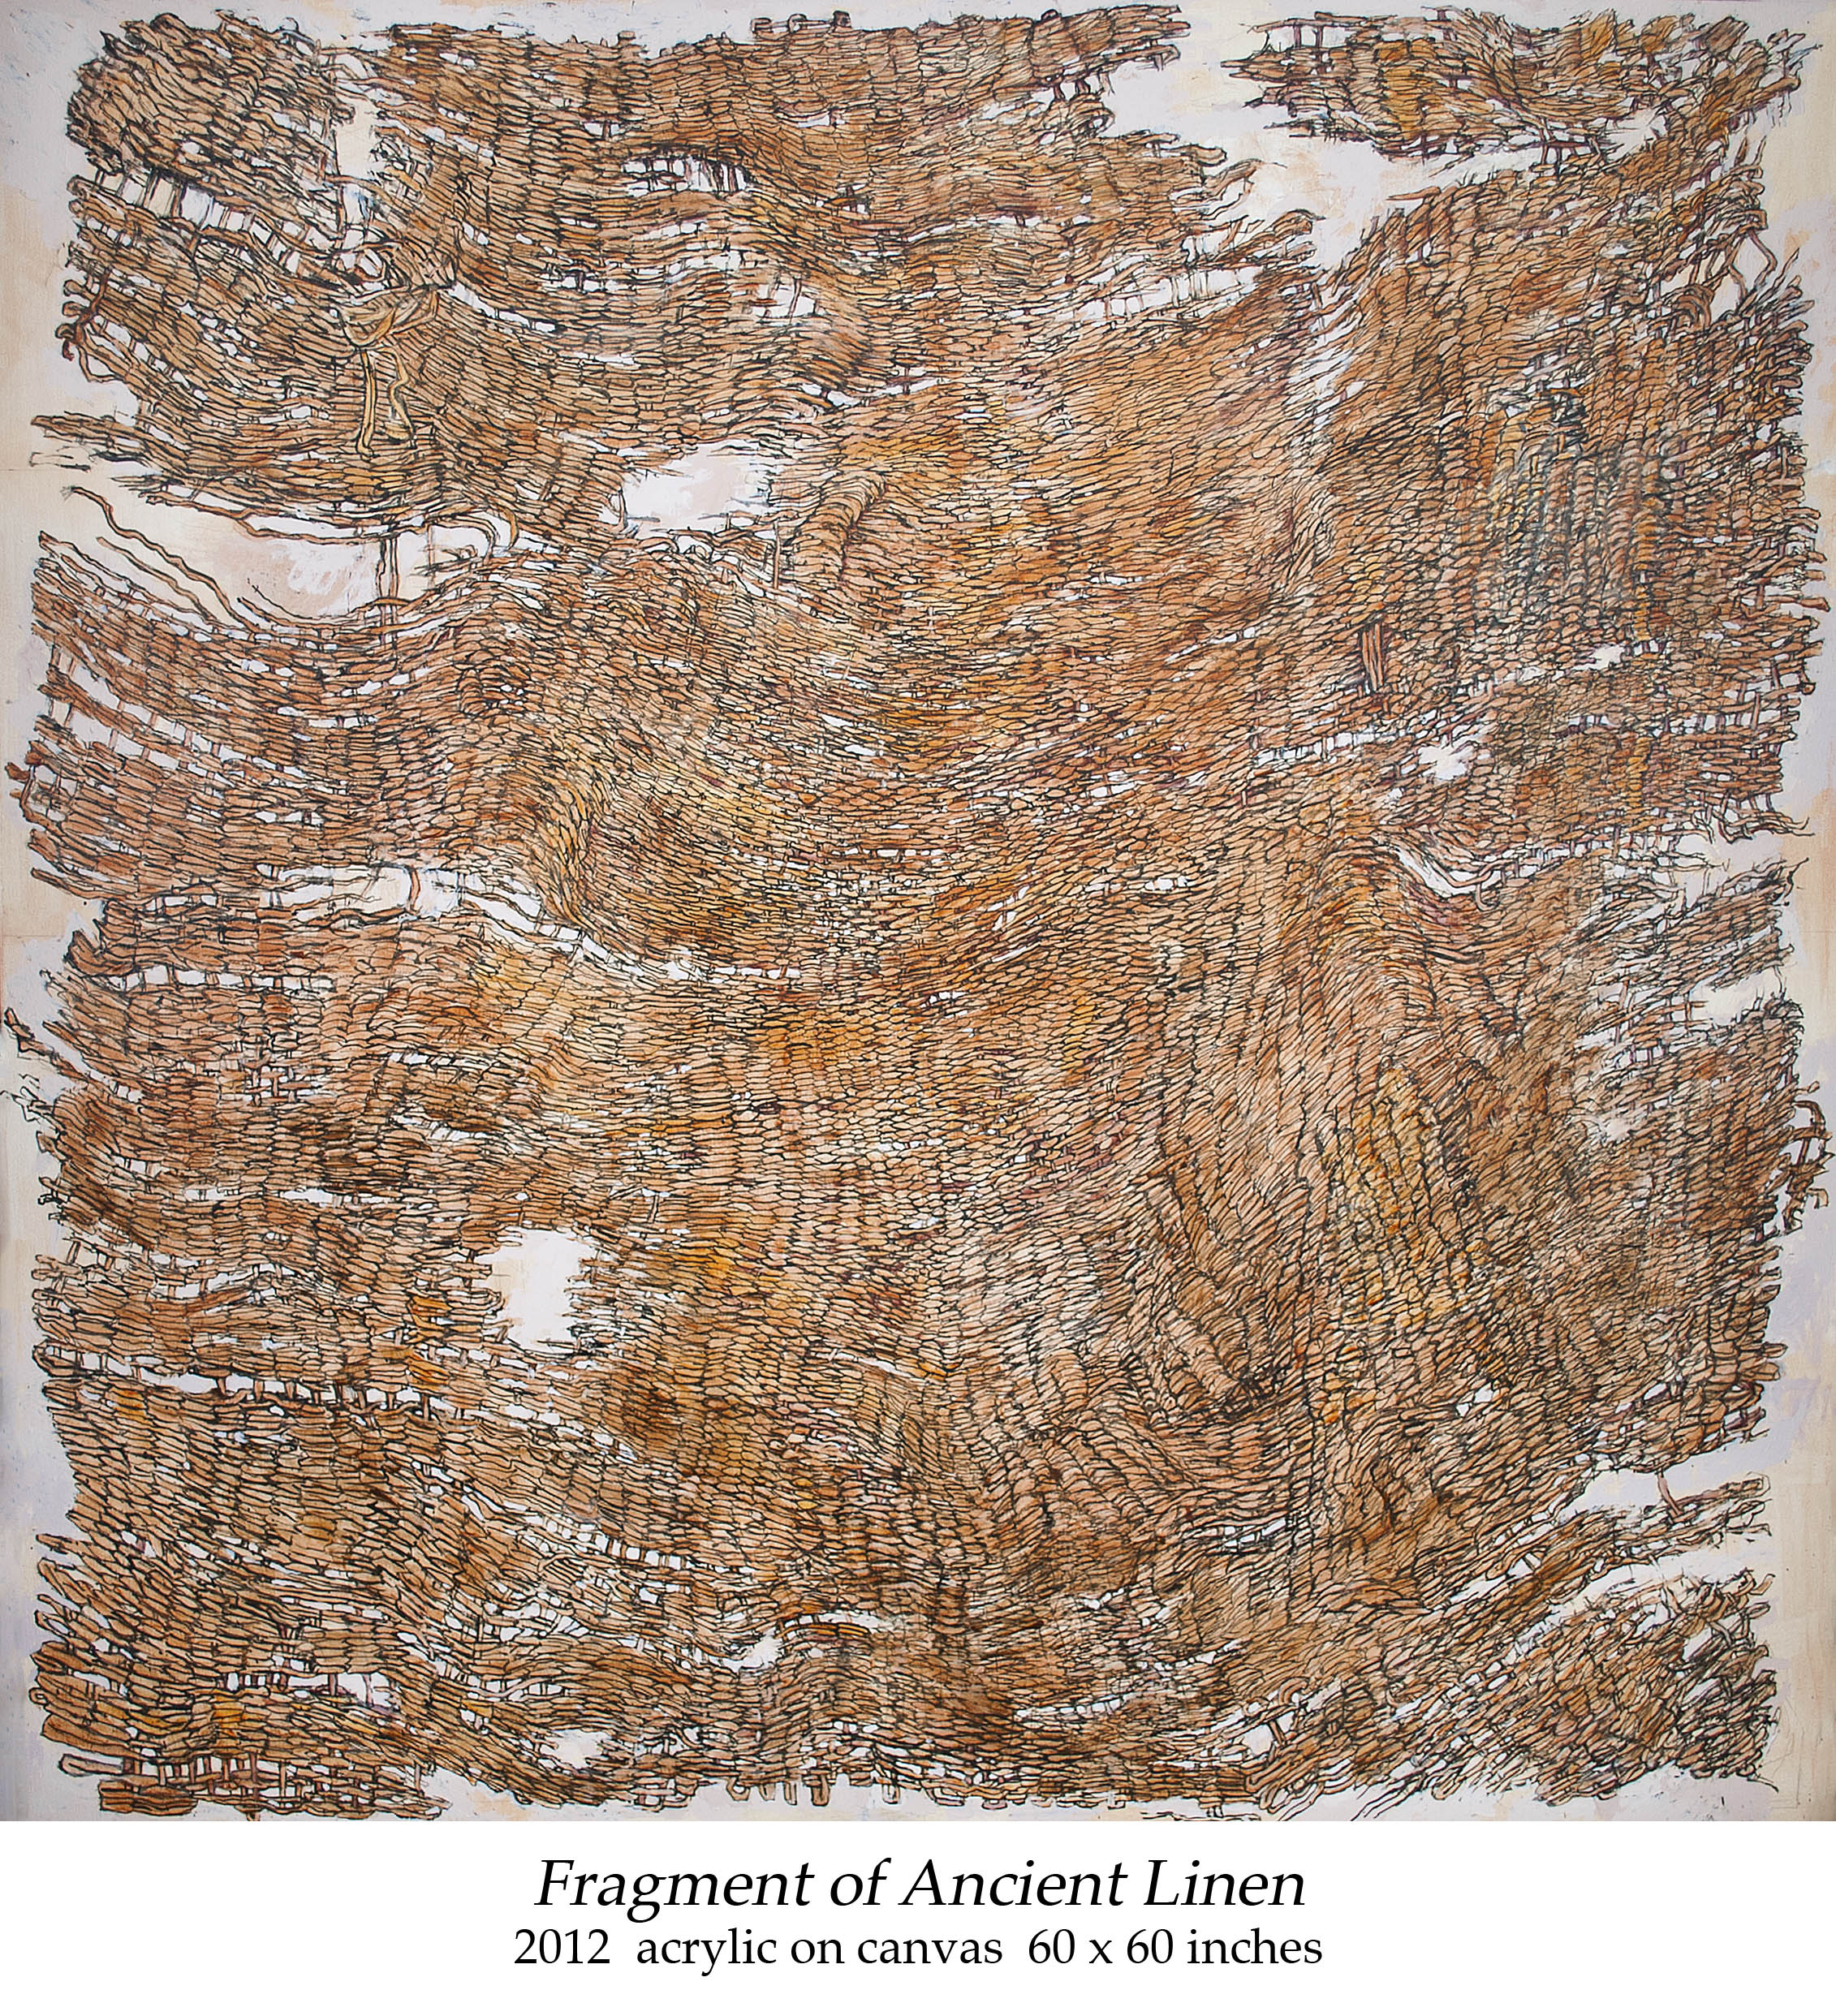 Fragment of Ancient Linen 2012 acrylic on canvas 60 x 60 inches.jpg